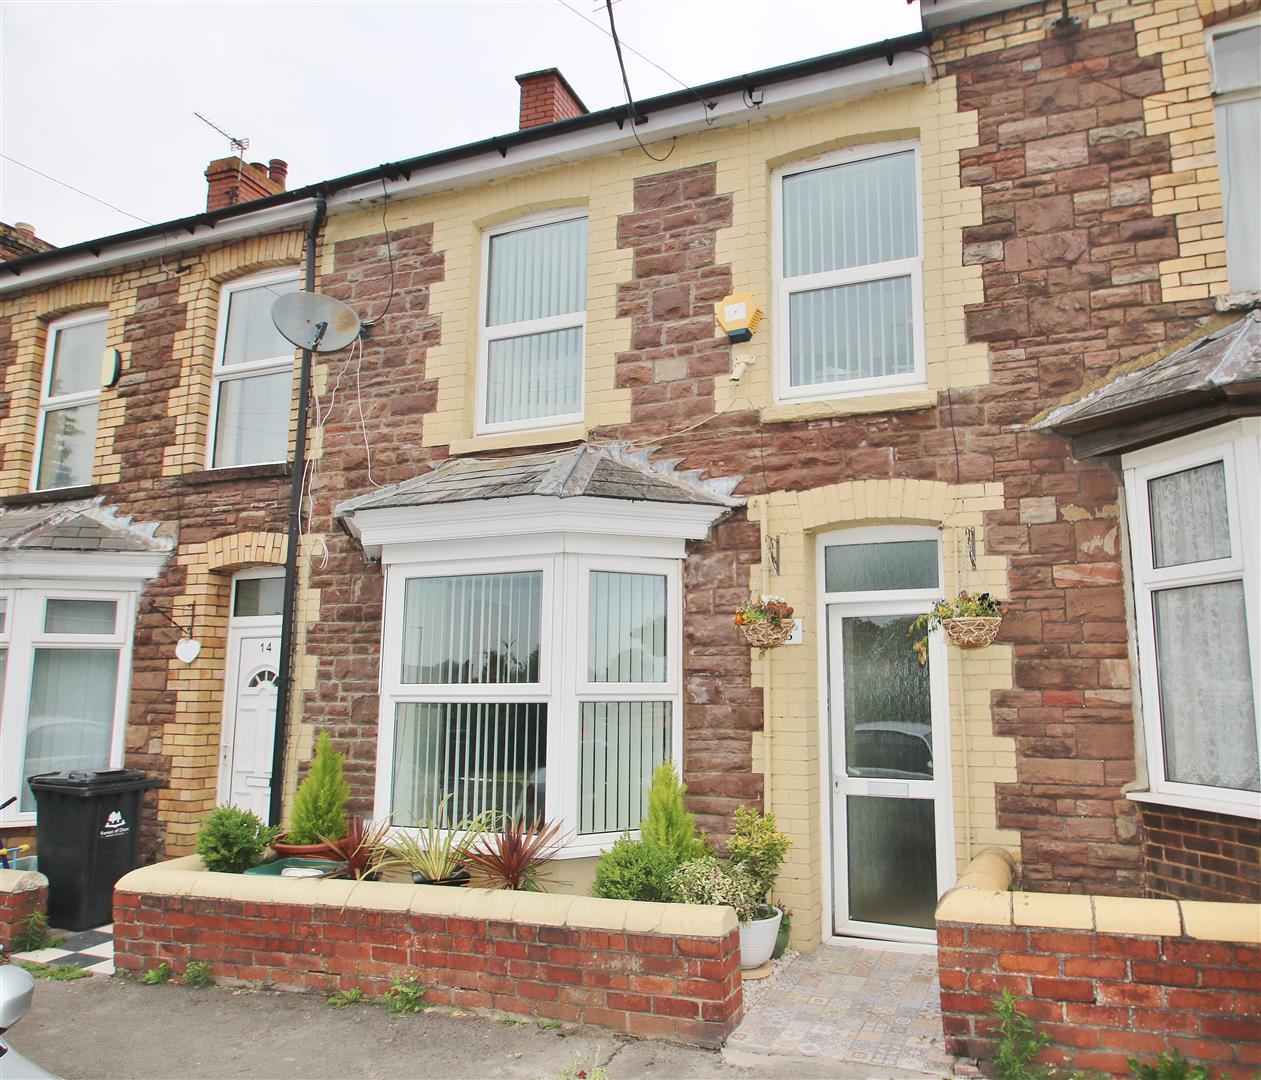 3 Bedroom Terraced House For Sale In Lydney